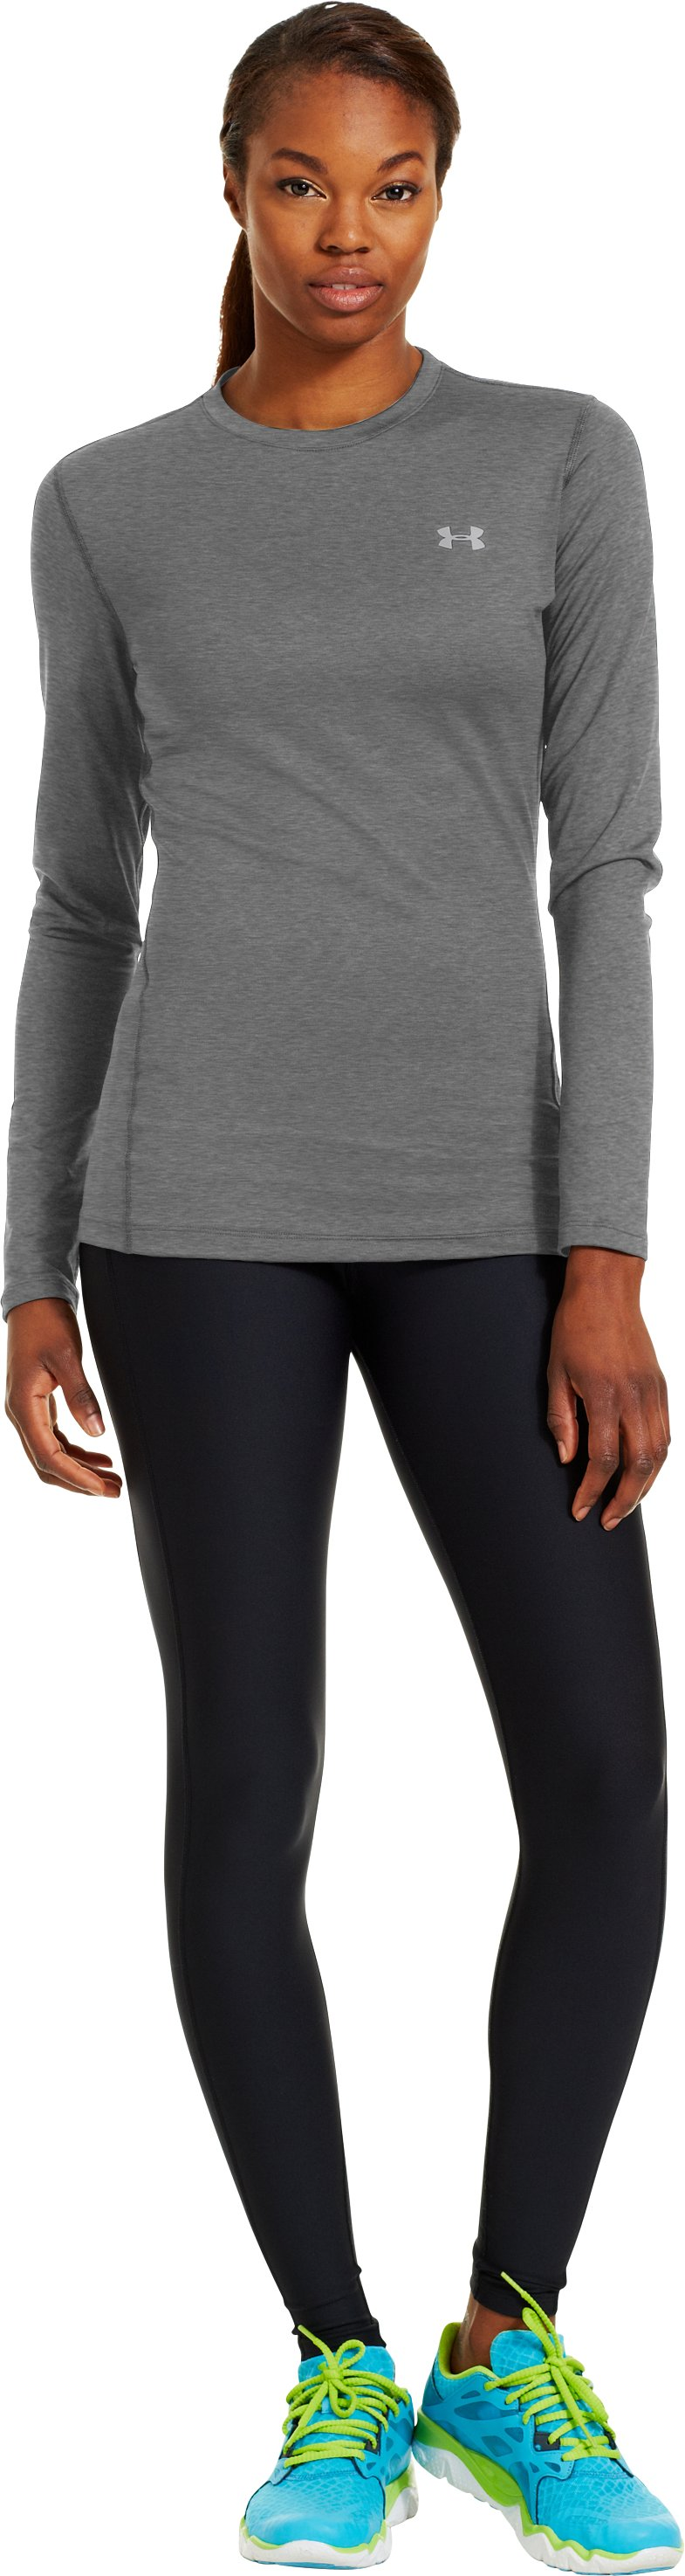 Women's ColdGear® Fitted Long Sleeve Crew, Carbon Heather, Front